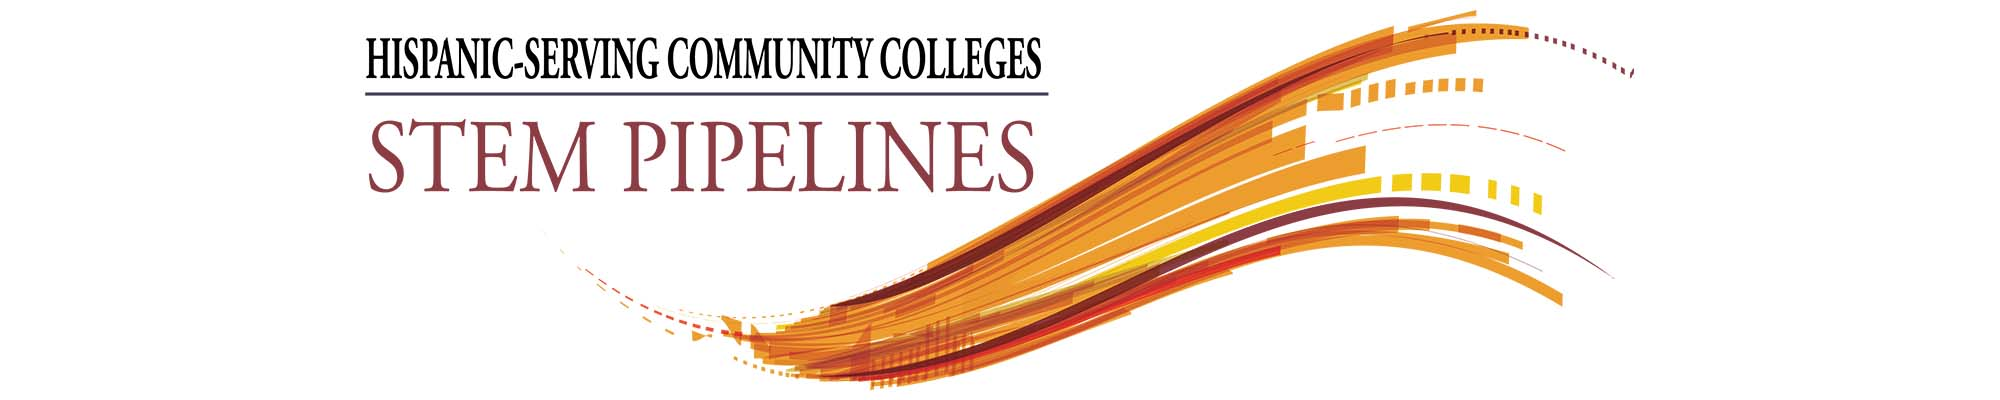 Hispanic-Serving Community Colleges banner